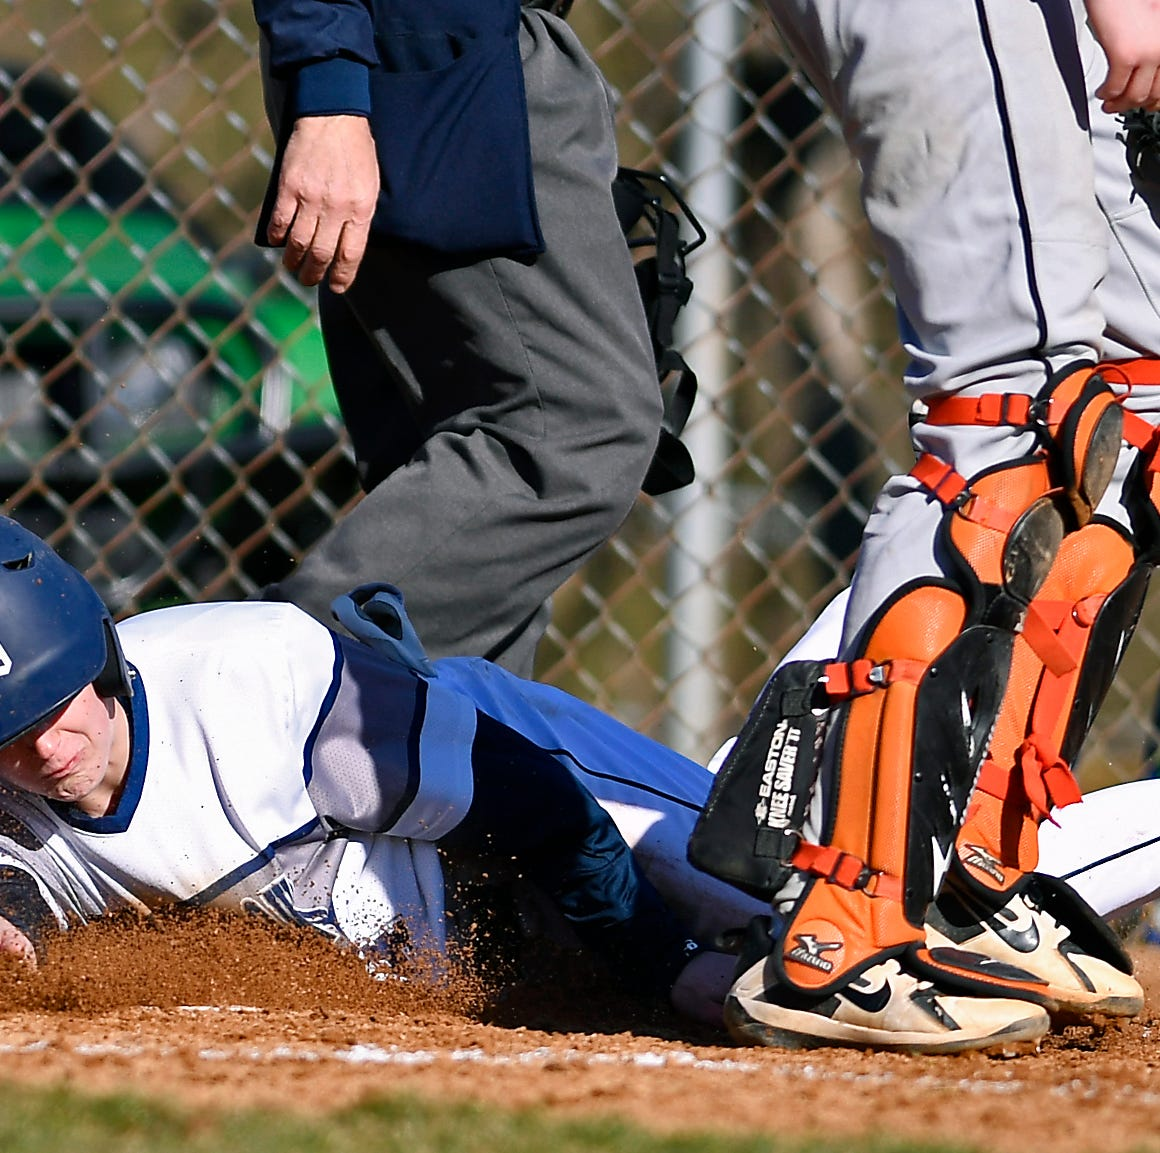 PREP ROUNDUP, MARCH 26: Dallastown starts season of great expectations with 9-4 win